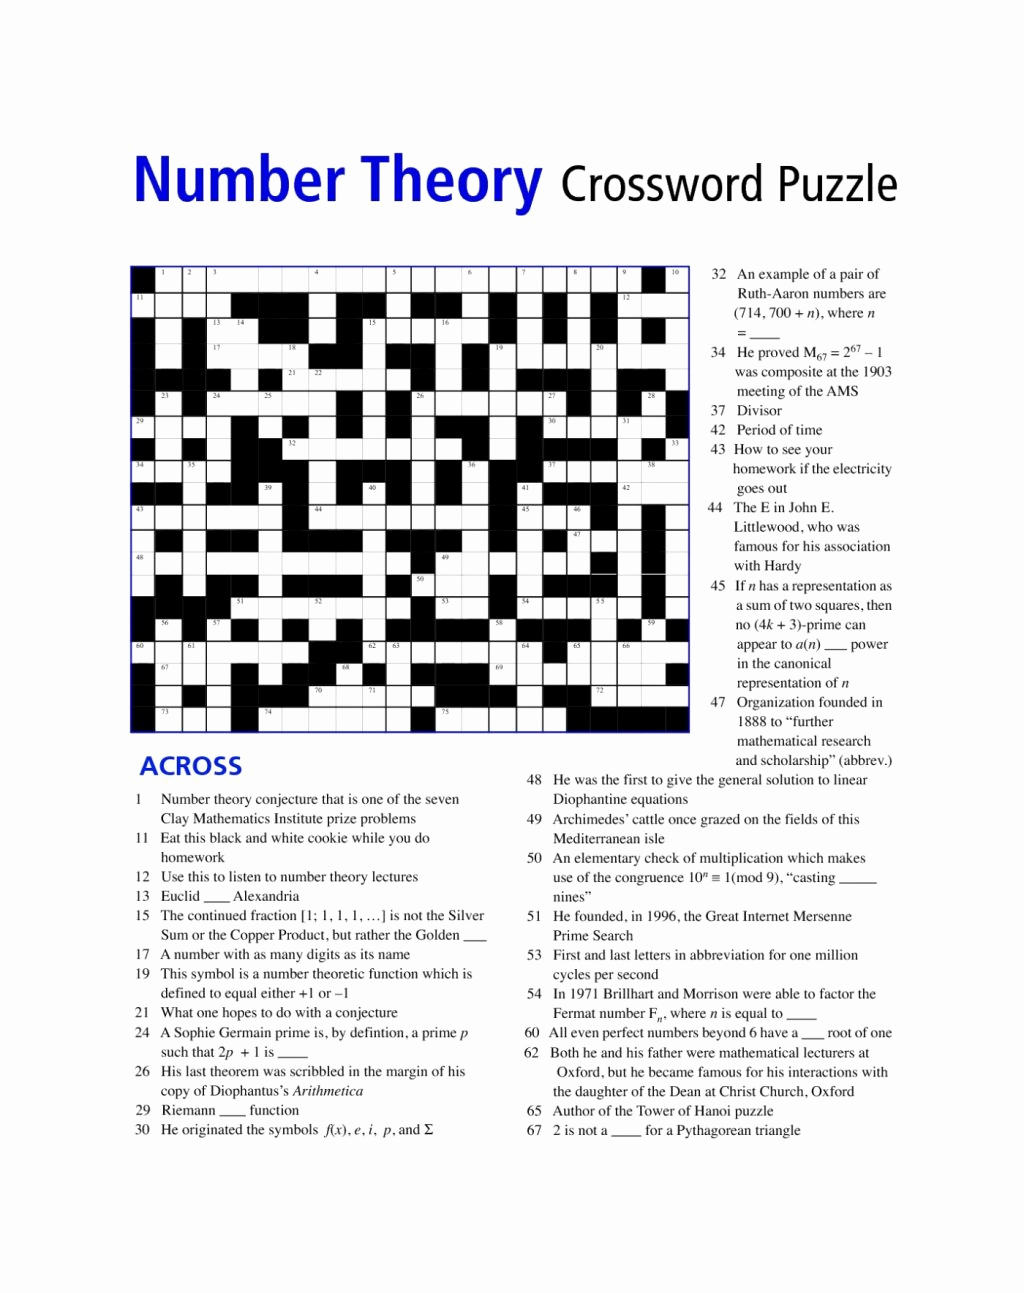 6th Grade Math Puzzle Worksheets Awesome Printable Math Puzzle 6th Grade